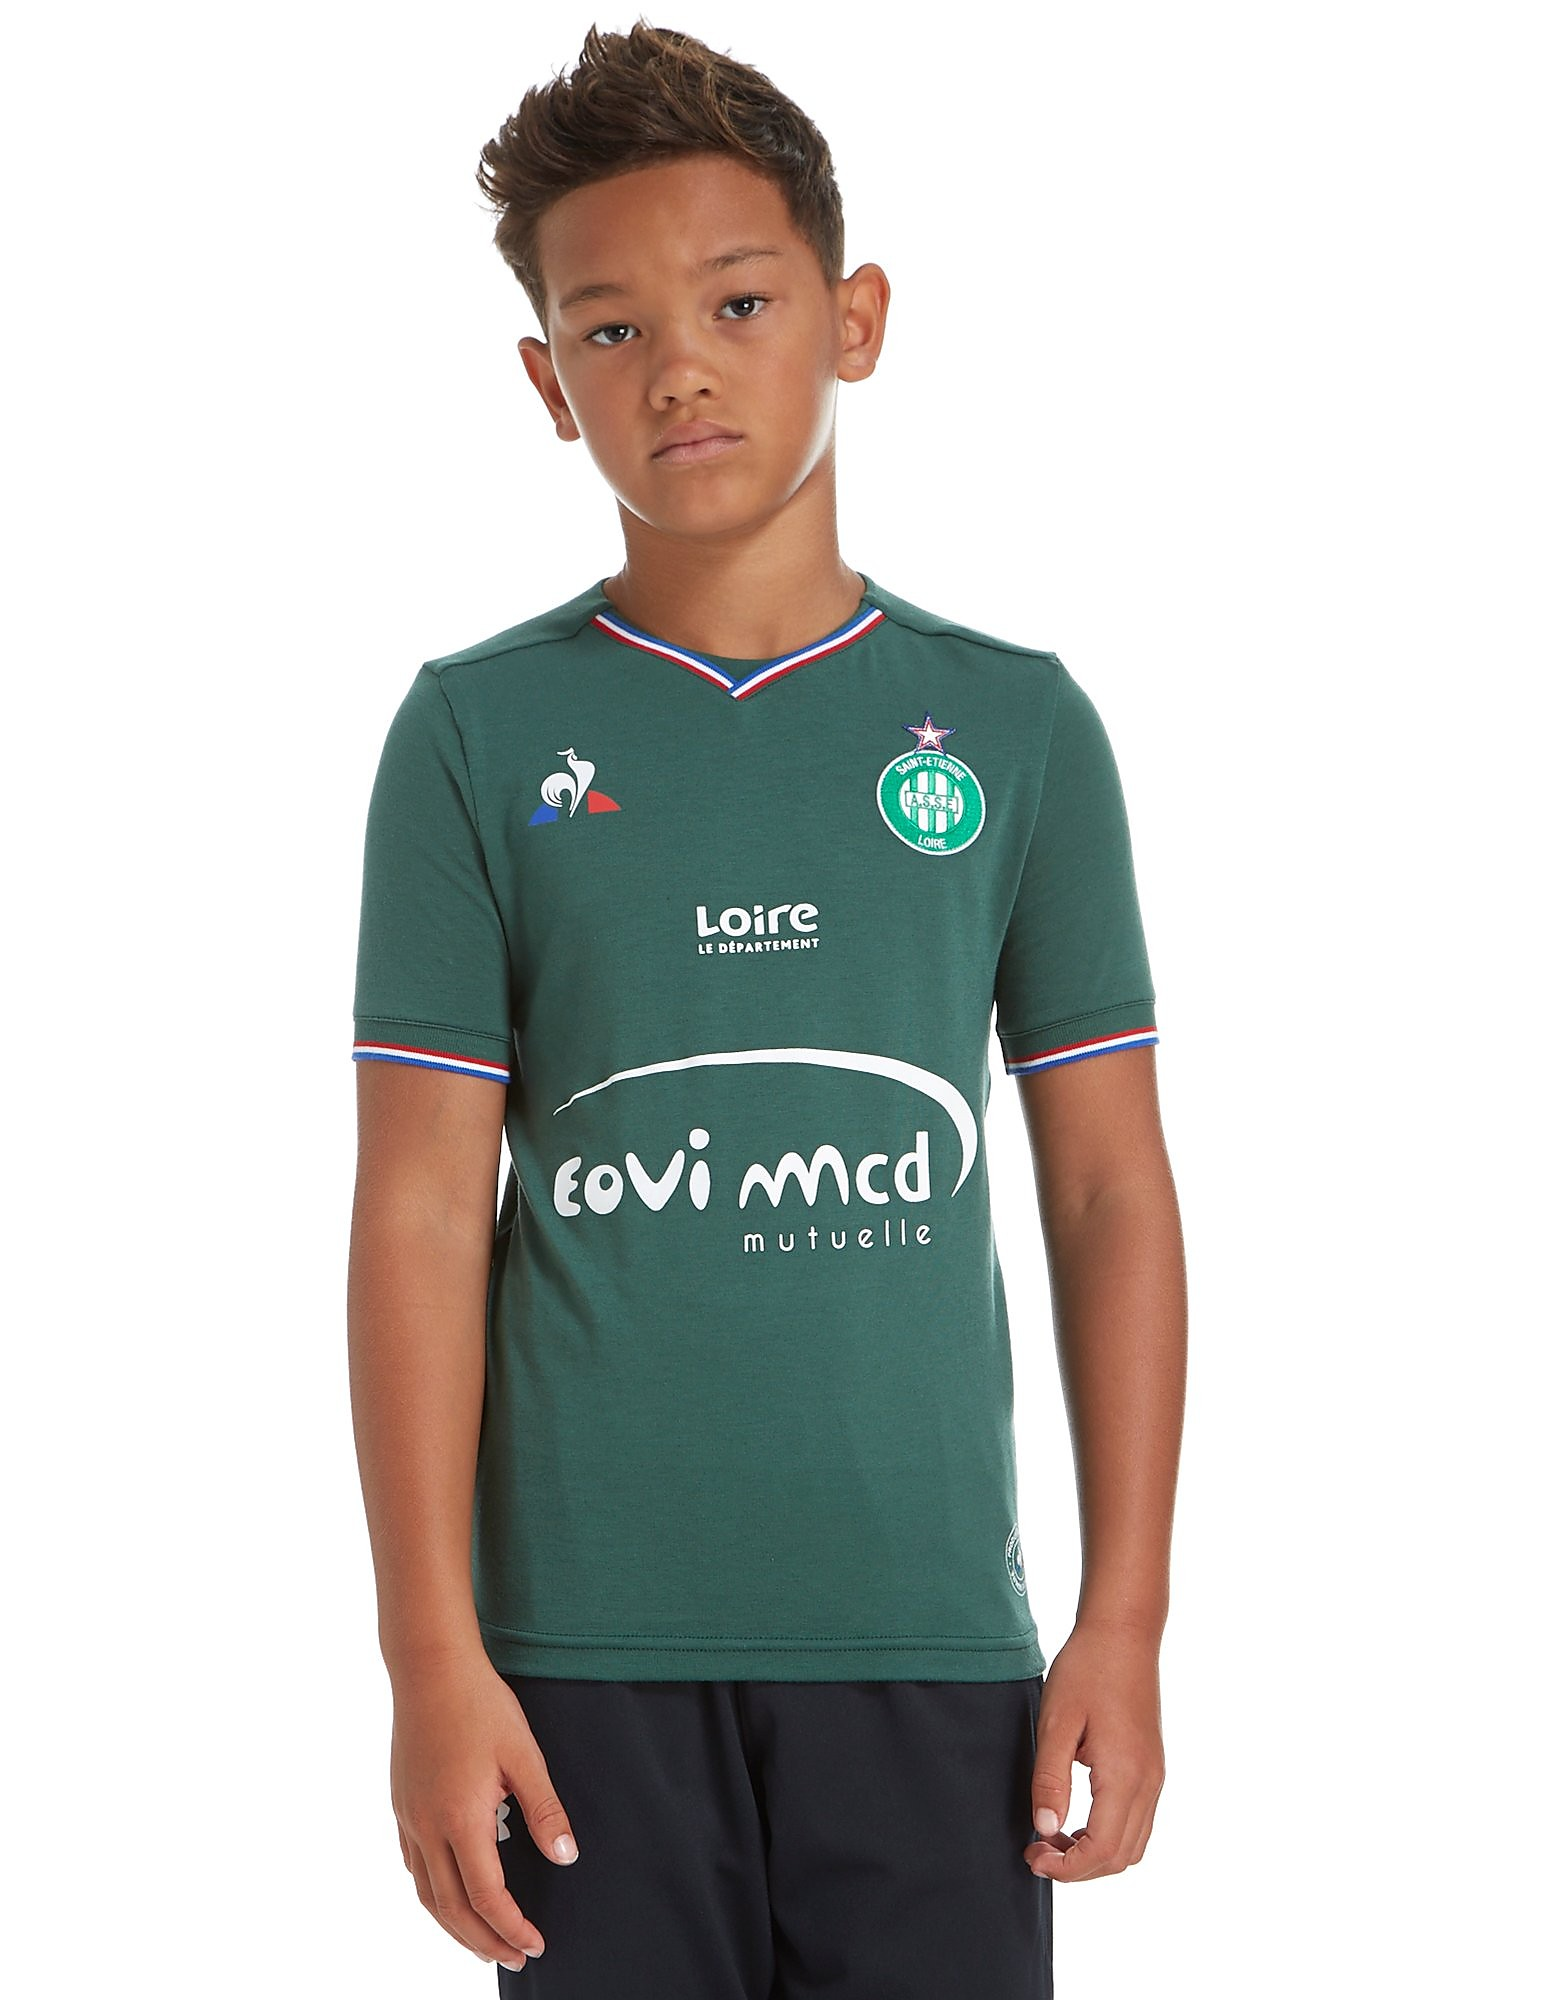 Le Coq Sportif Saint-Étienne Home Shirt 2017/18 Junior